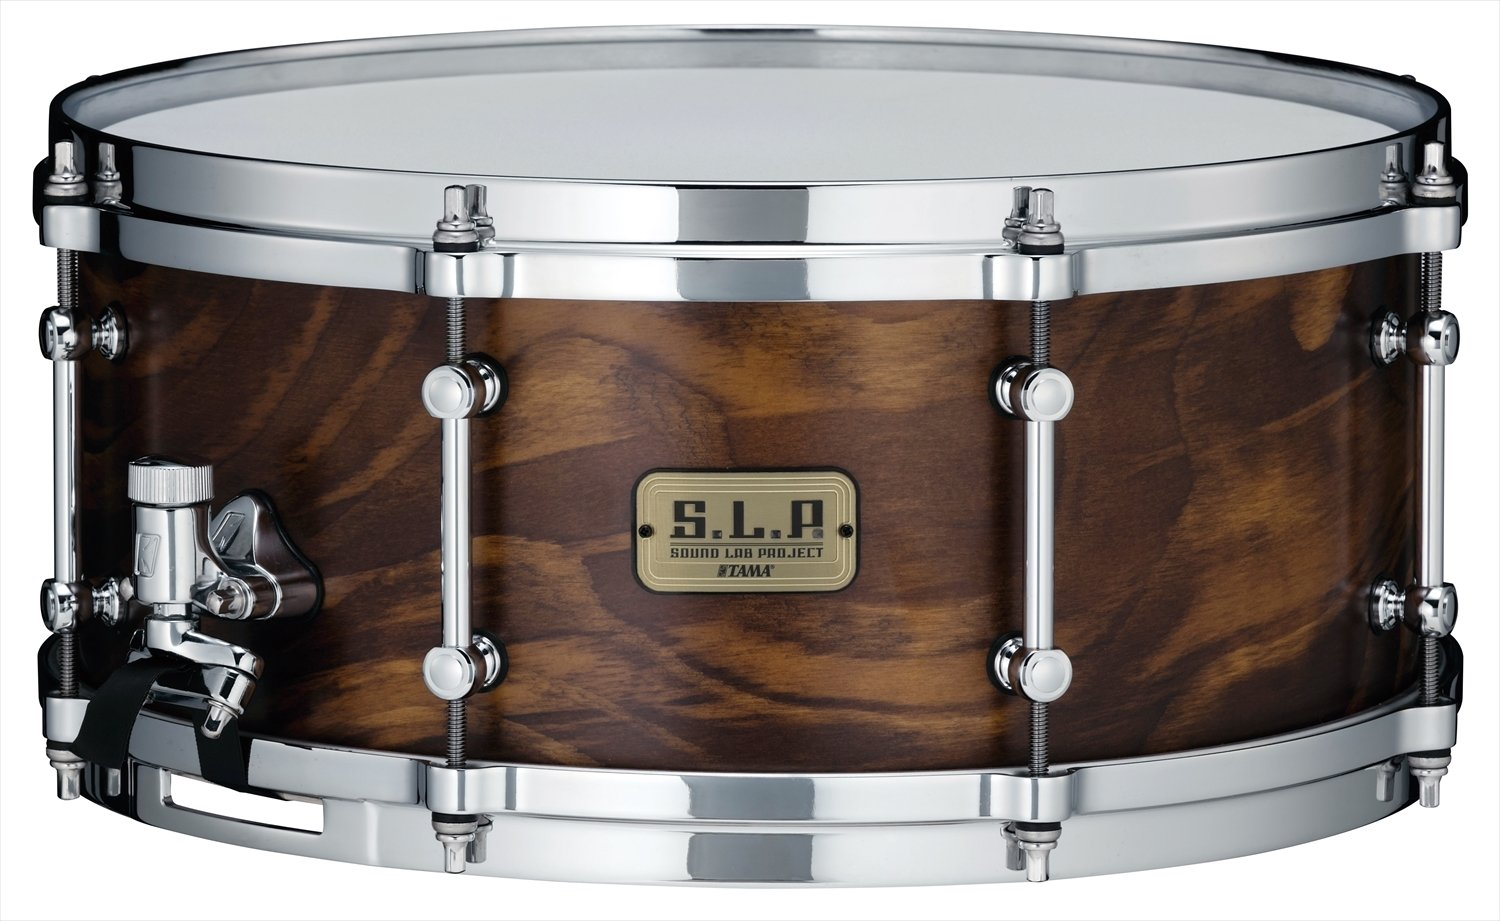 Tama S.L.P. Fat Spruce Snare Drum - 6